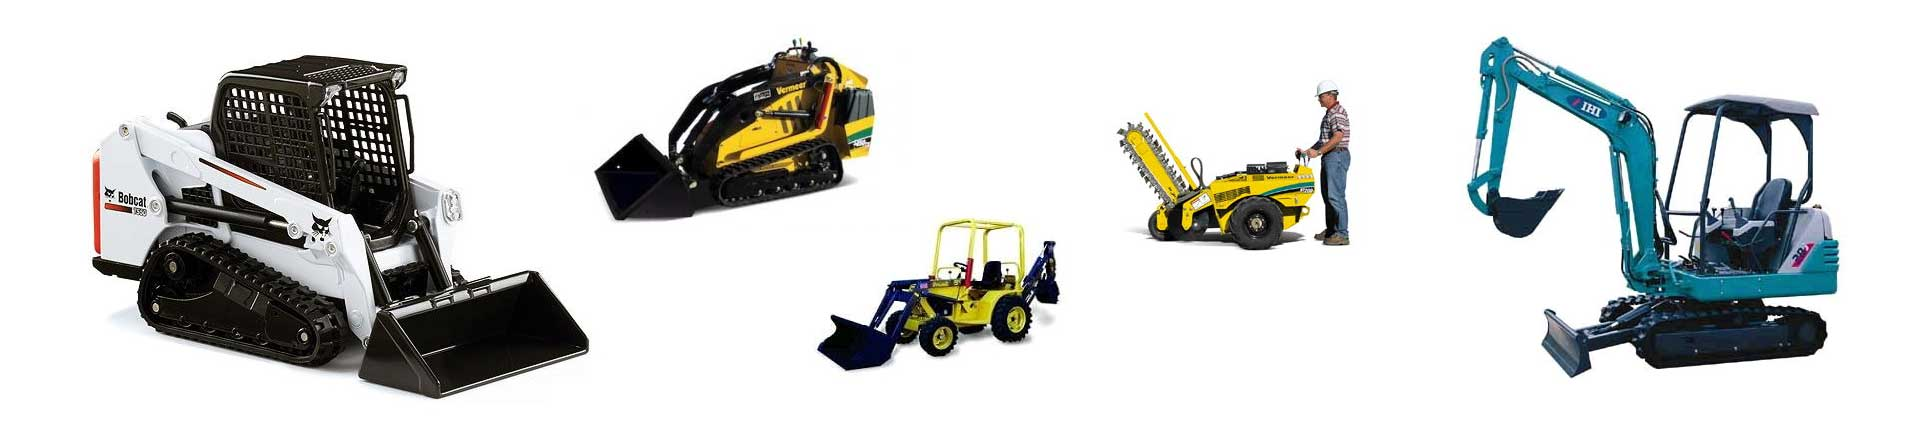 Equipment rentals in South Bend-Mishawaka Metro Area